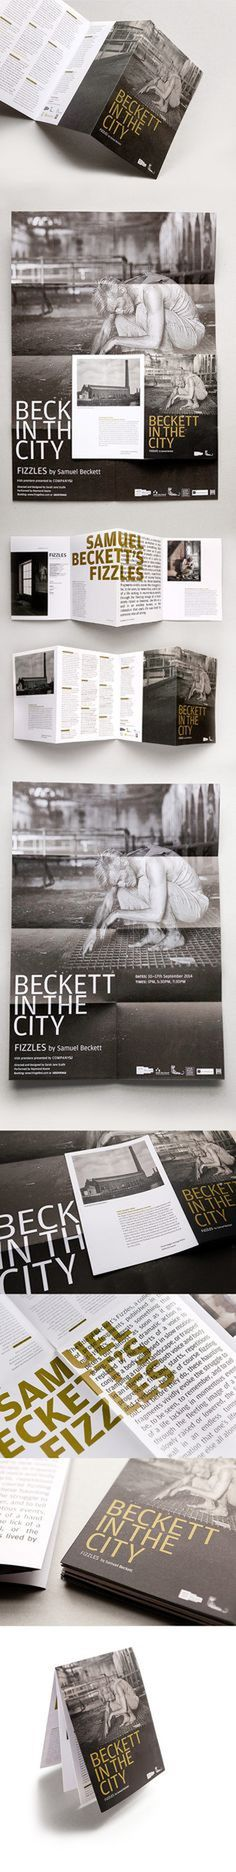 #design #layout #graphic #folded #programme #theatre #urbend #beckett